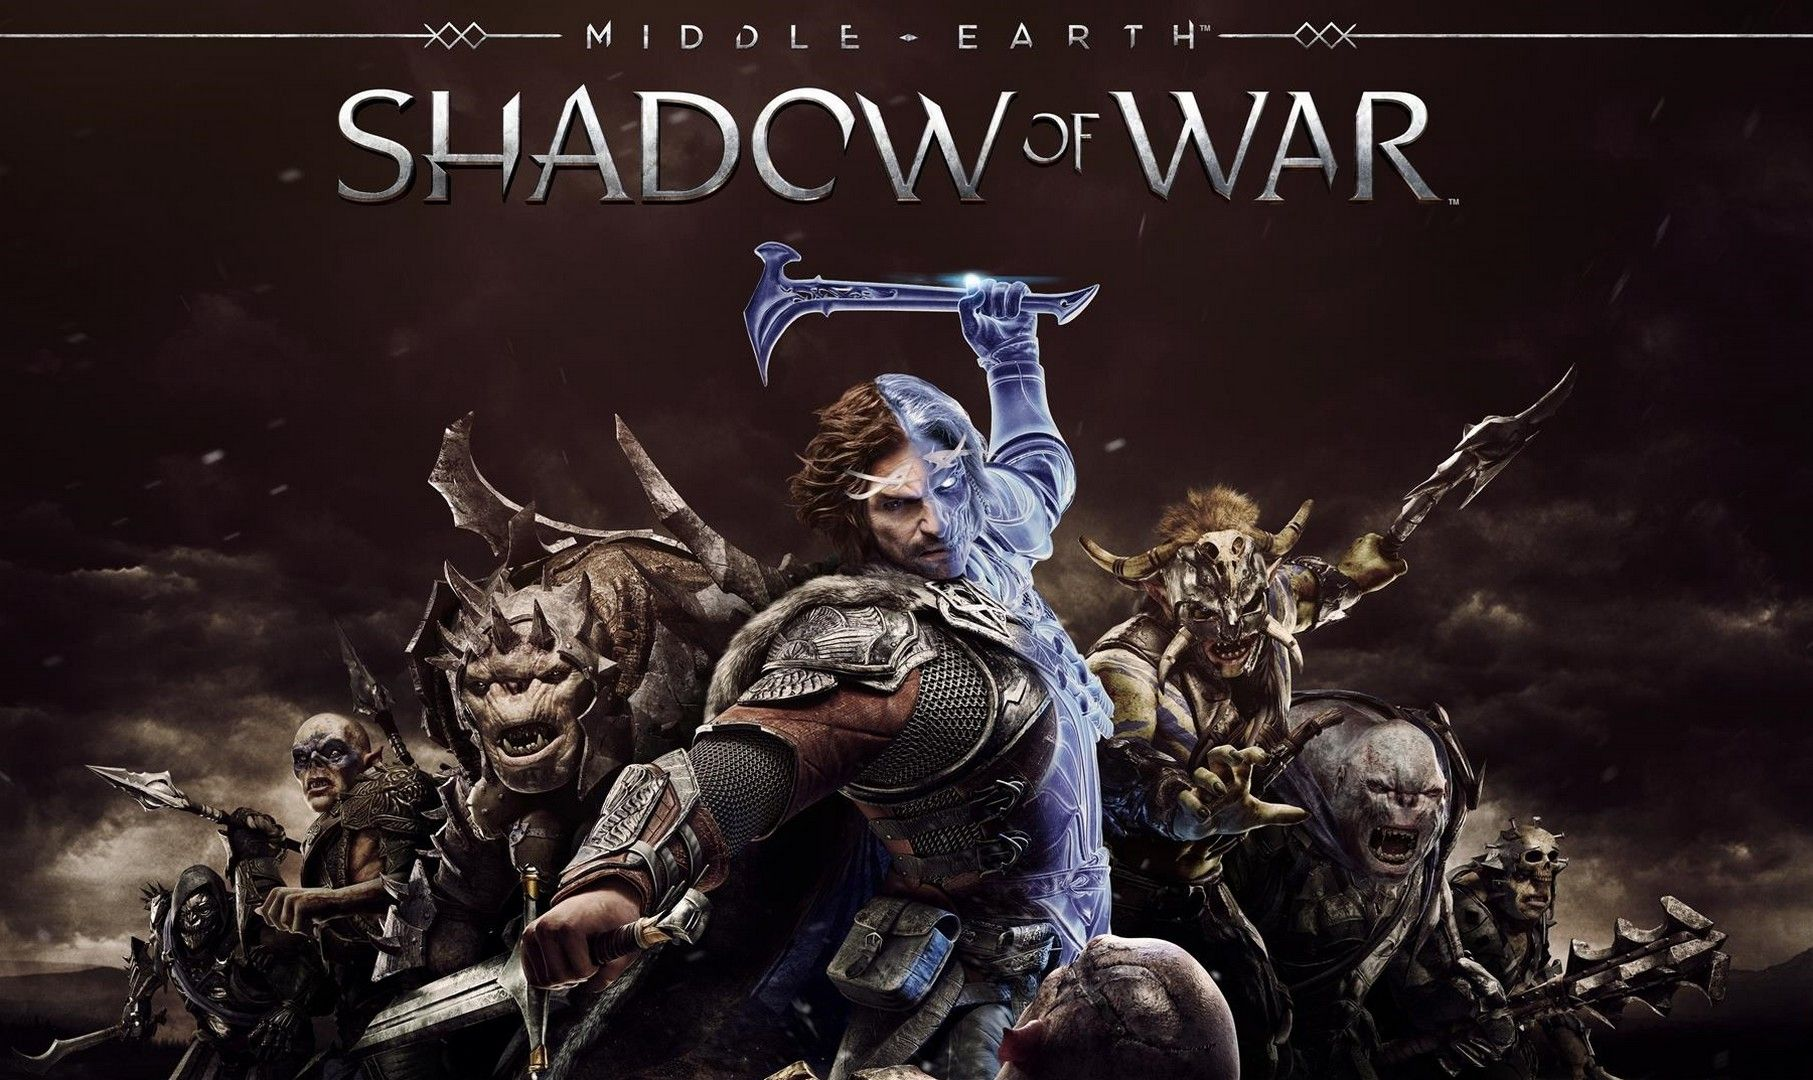 Middle-earth: Shadow of War wallpapers HD